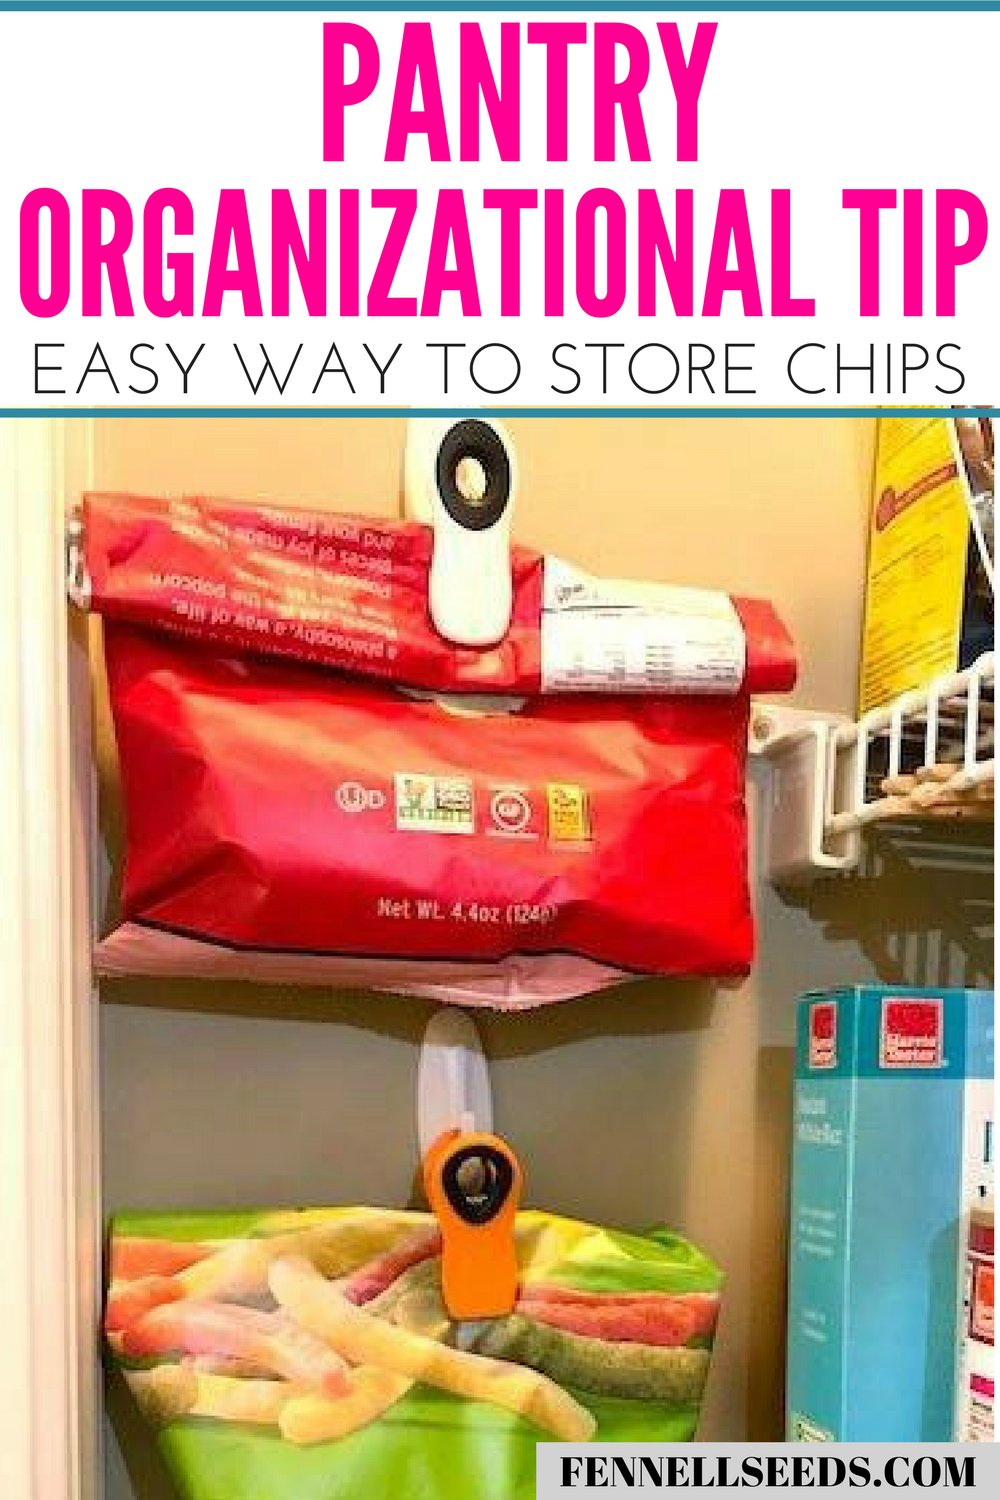 Pantry Organization | Bags of chips organization | Bags of Chips Storage | Pantry Ideas